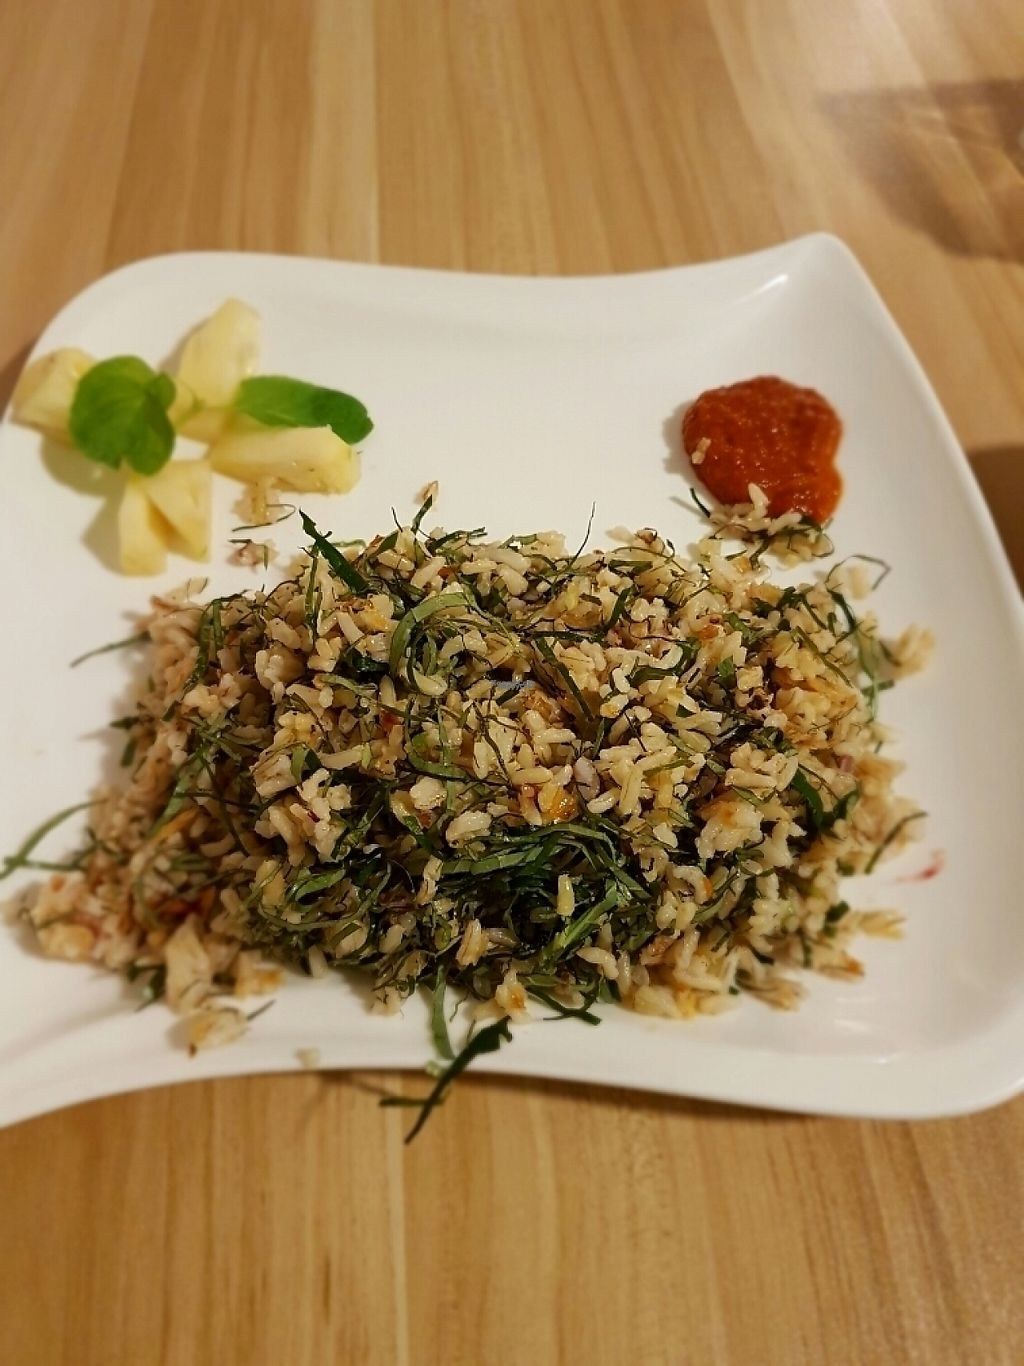 """Photo of The Leaf Healthy House  by <a href=""""/members/profile/tantantan"""">tantantan</a> <br/>brown rice with Chinese spices. so good <br/> January 24, 2017  - <a href='/contact/abuse/image/27692/215607'>Report</a>"""